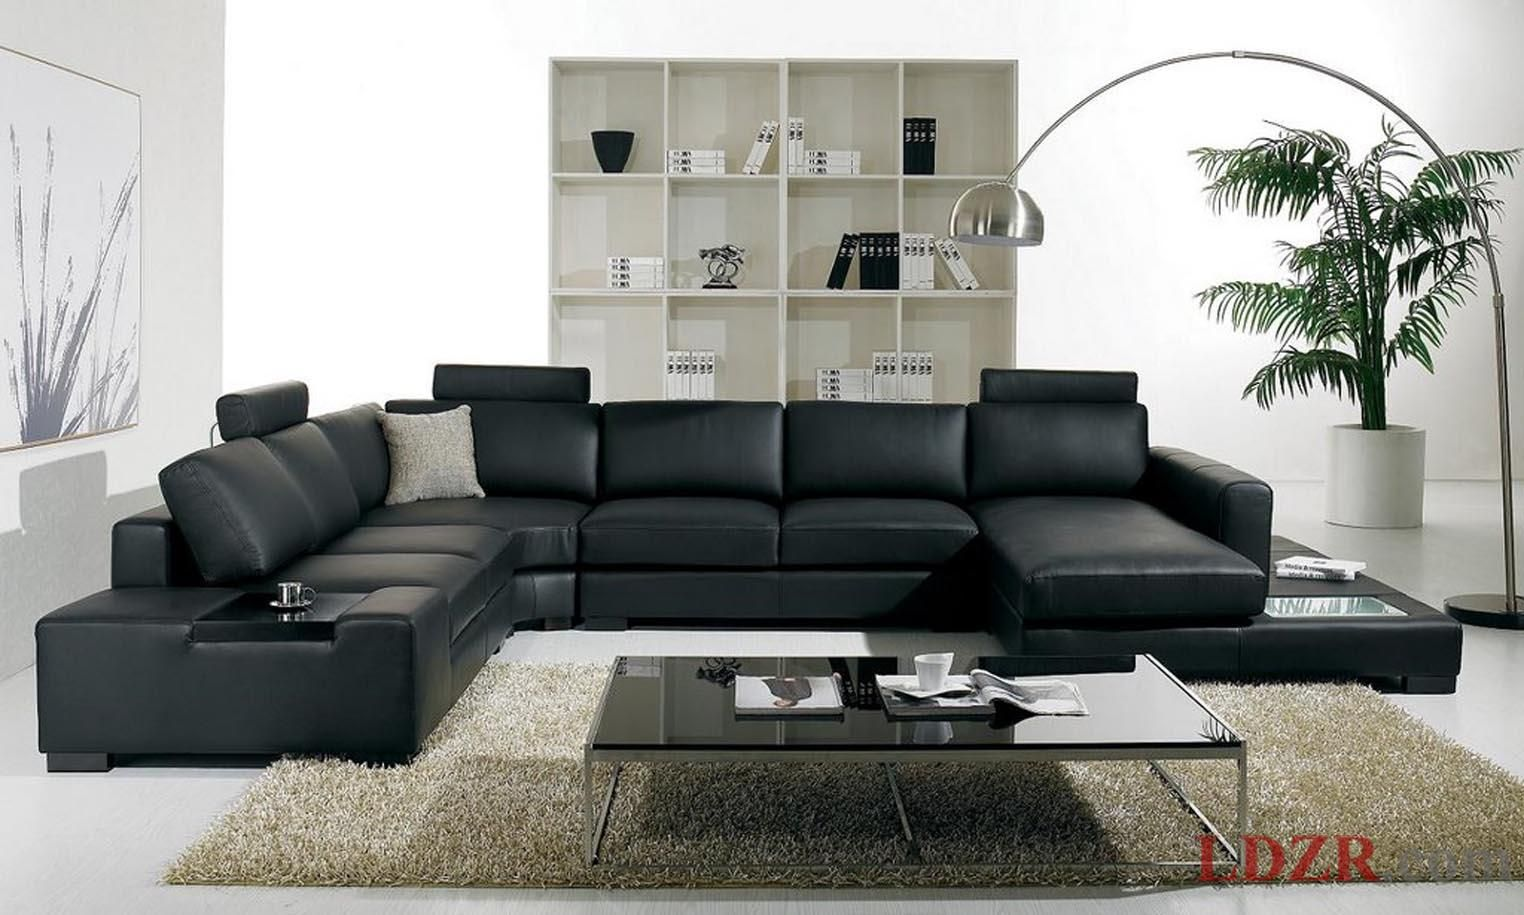 Home And Living Lovely Room With Black Leather Sofa Design Ideas